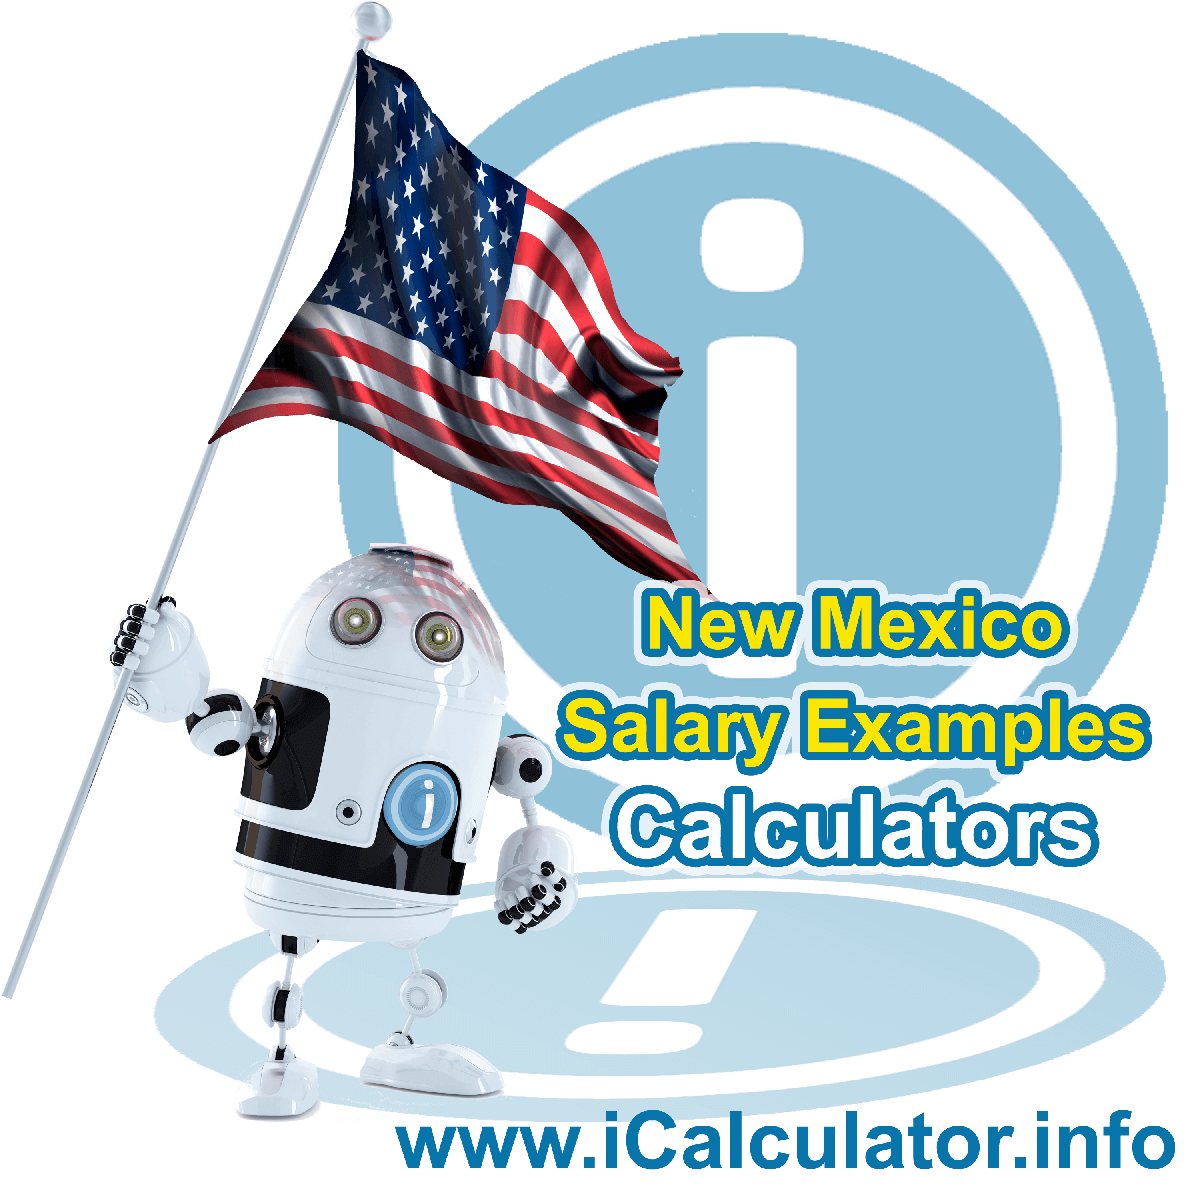 New Mexico Salary Example for $270.00 in 2020 | iCalculator | $270.00 salary example for employee and employer paying New Mexico State tincome taxes. Detailed salary after tax calculation including New Mexico State Tax, Federal State Tax, Medicare Deductions, Social Security, Capital Gains and other income tax and salary deductions complete with supporting New Mexico state tax tables